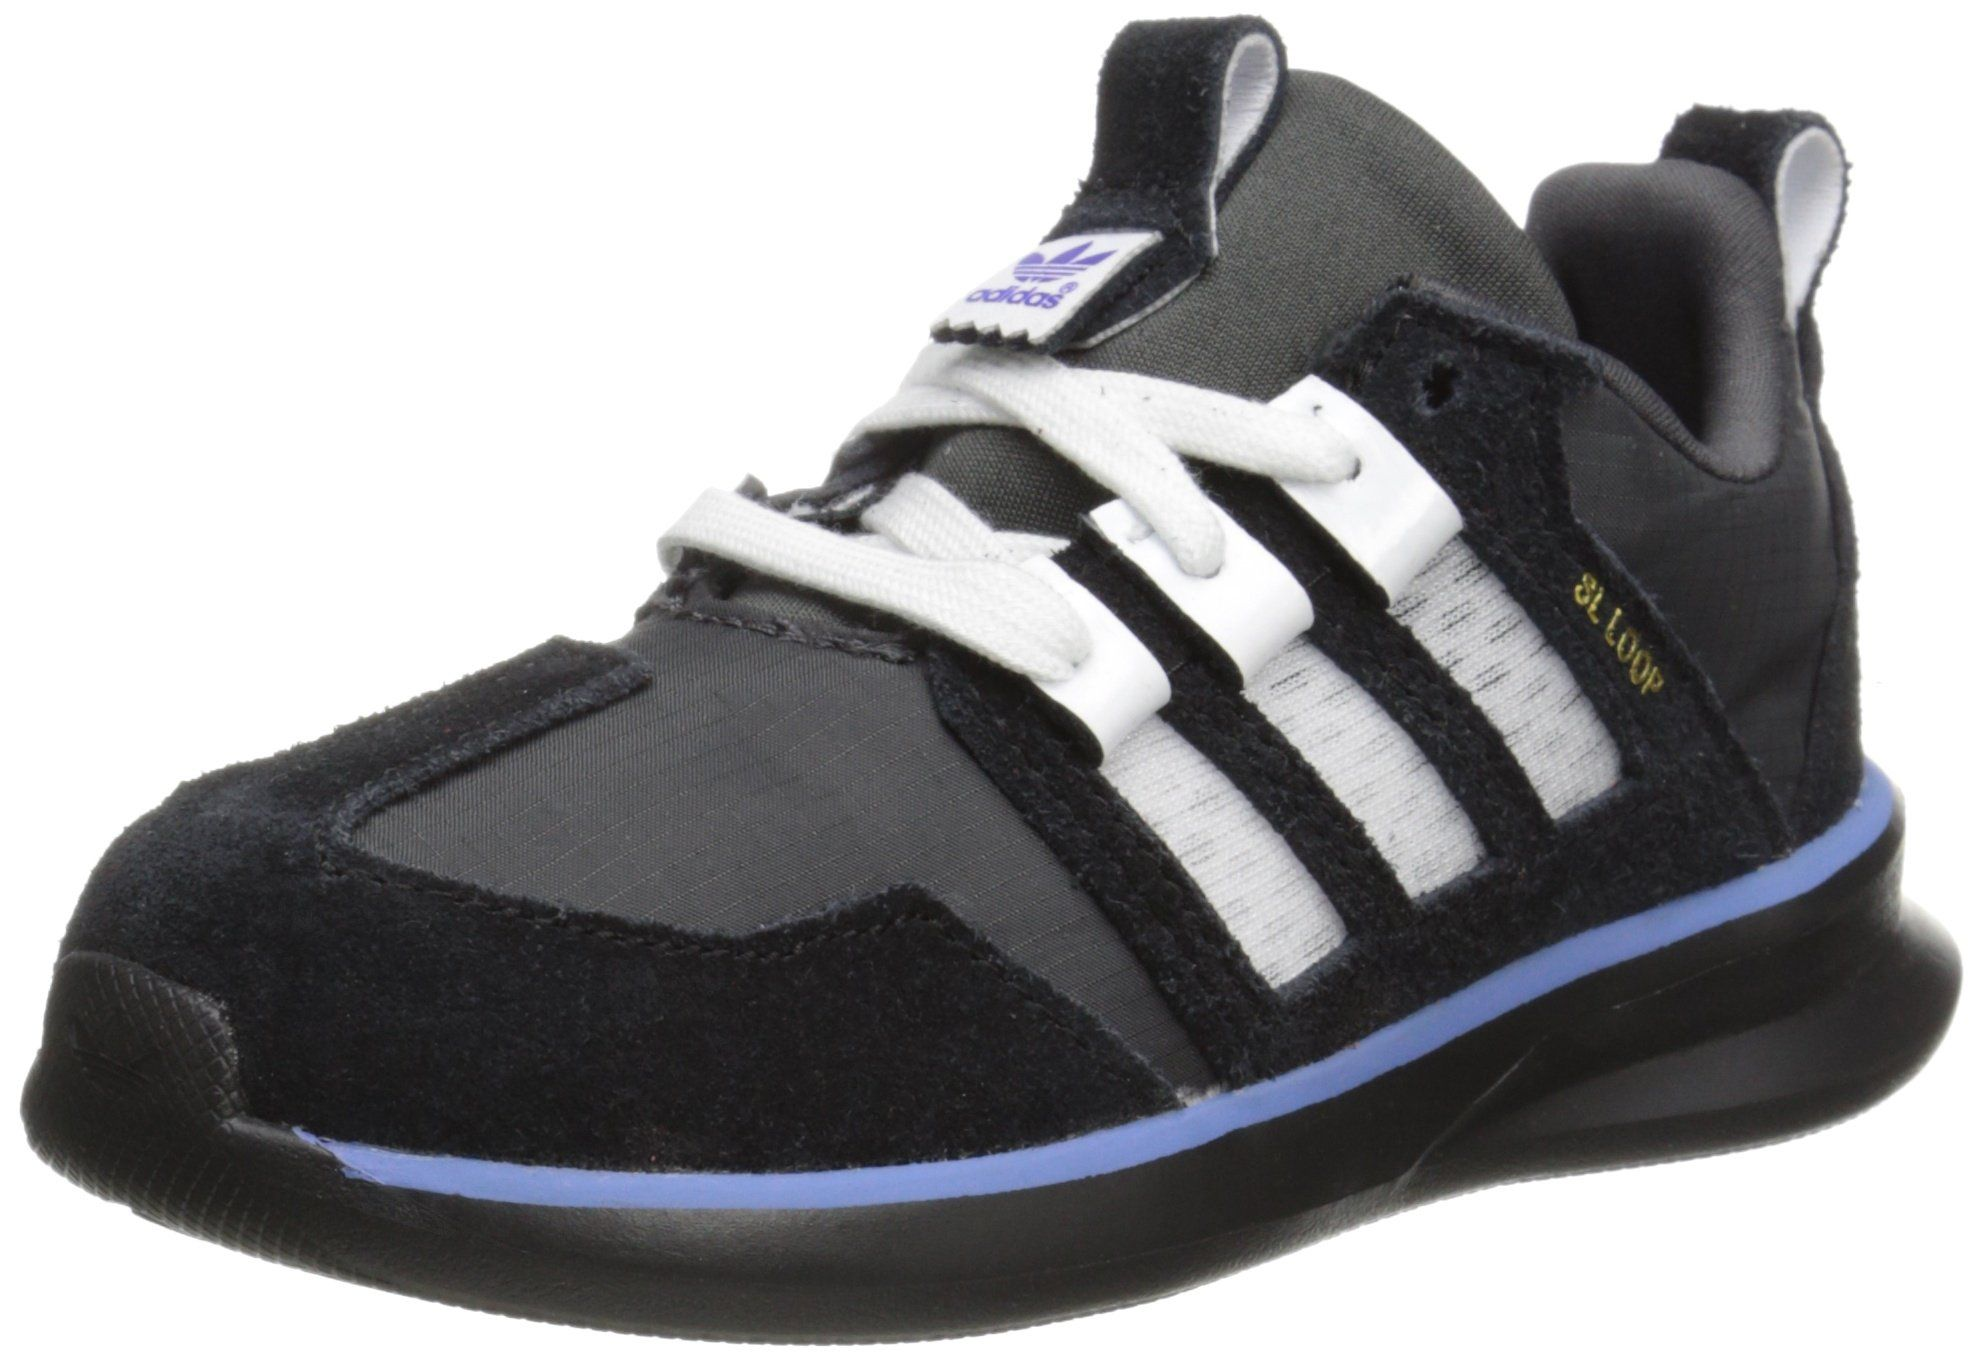 Adidas Originals Men's Black Sl Loop Runner Sneakers night Flash Night Flash Coupons